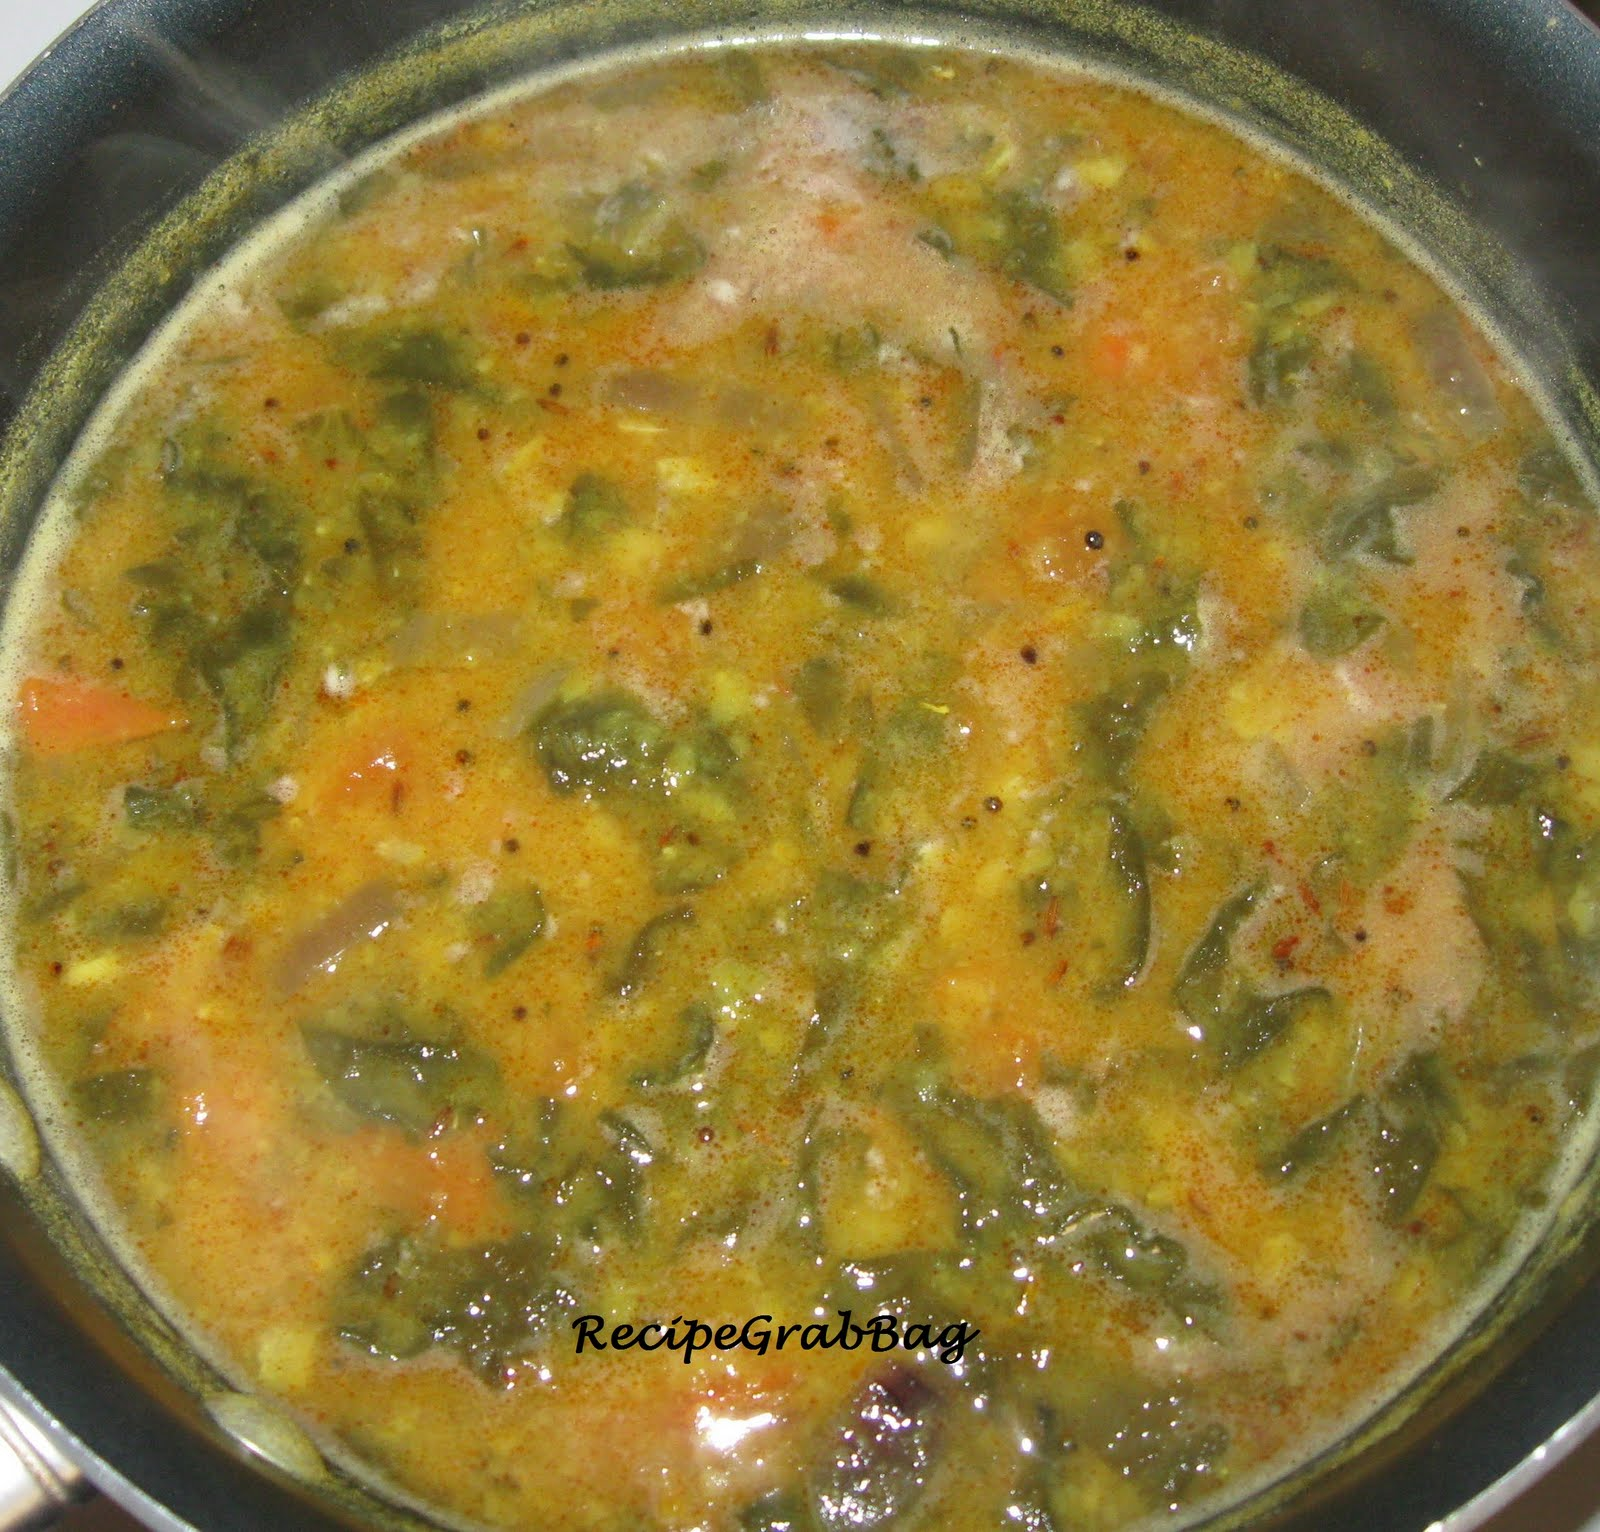 RecipeGrabBag: Dal Palak ( Lentils with Spinach)